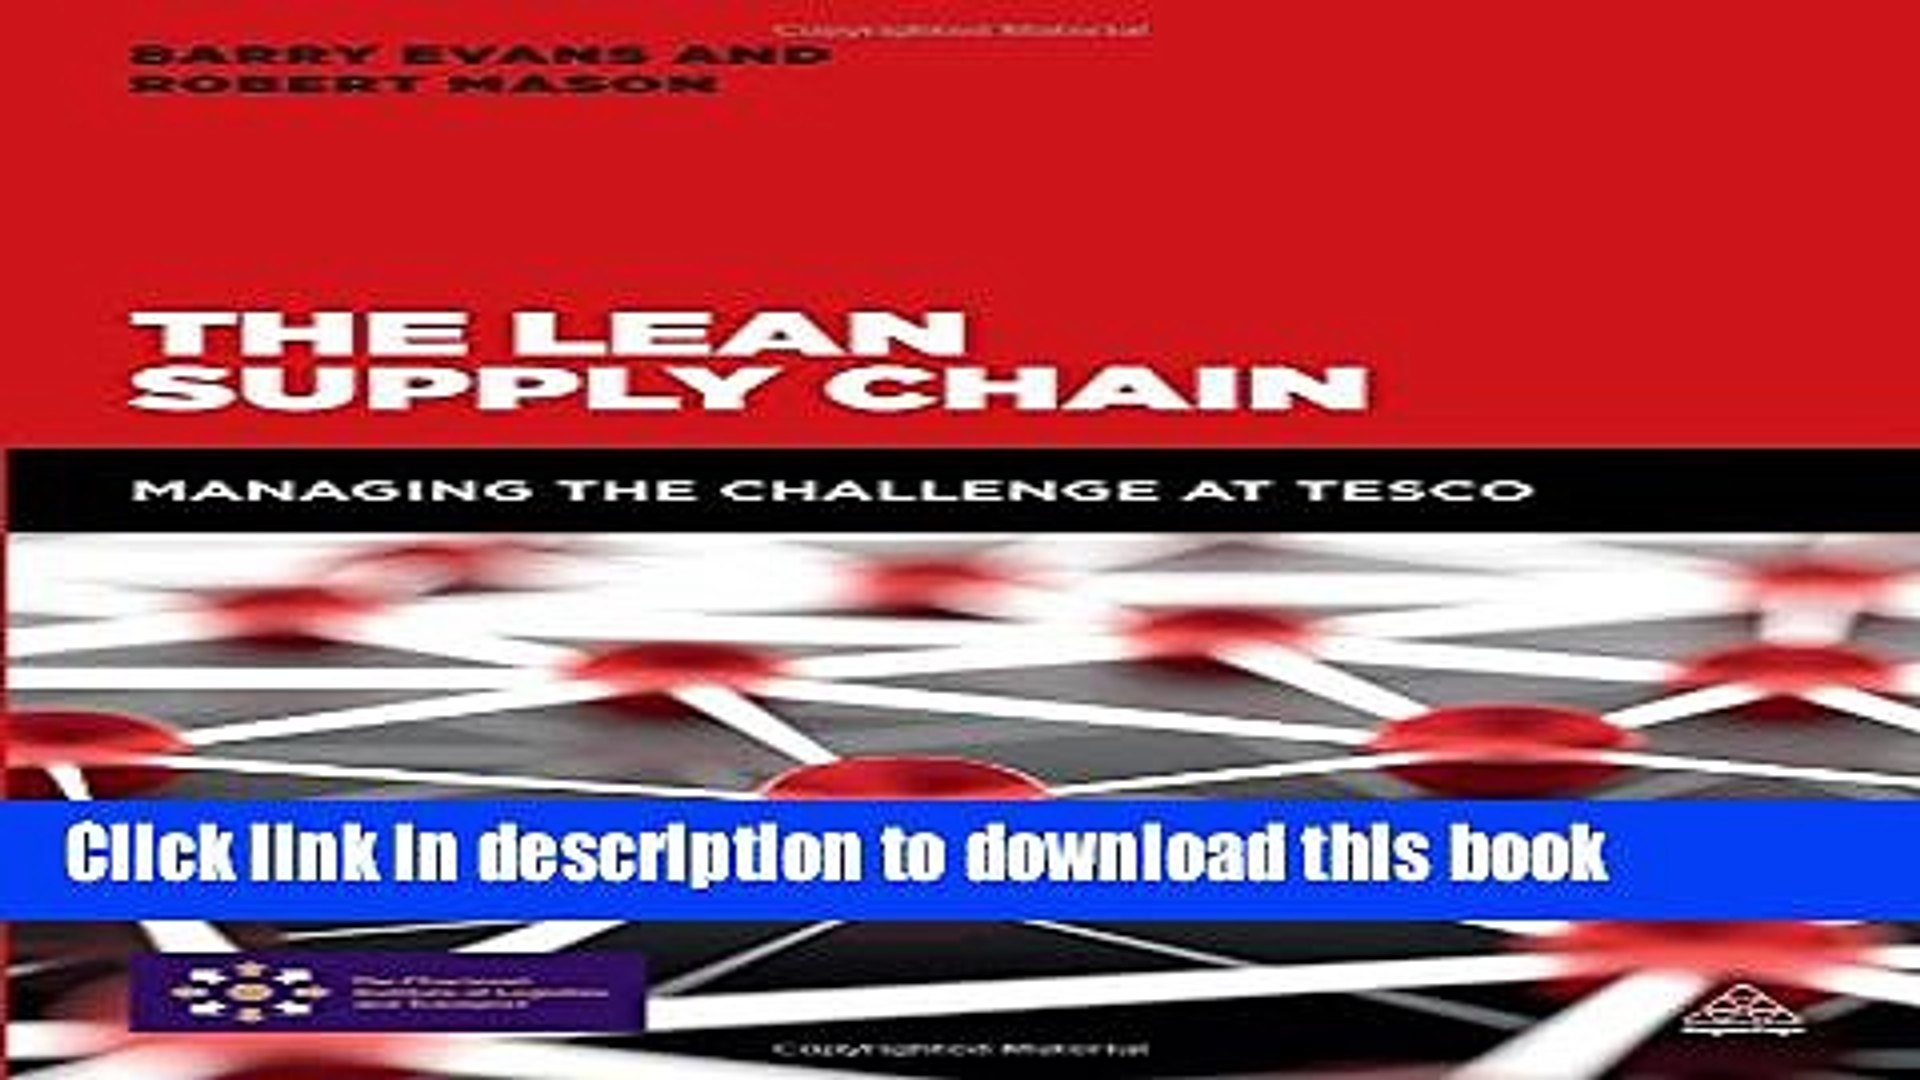 [Read PDF] The Lean Supply Chain: Managing the Challenge at Tesco Ebook Free